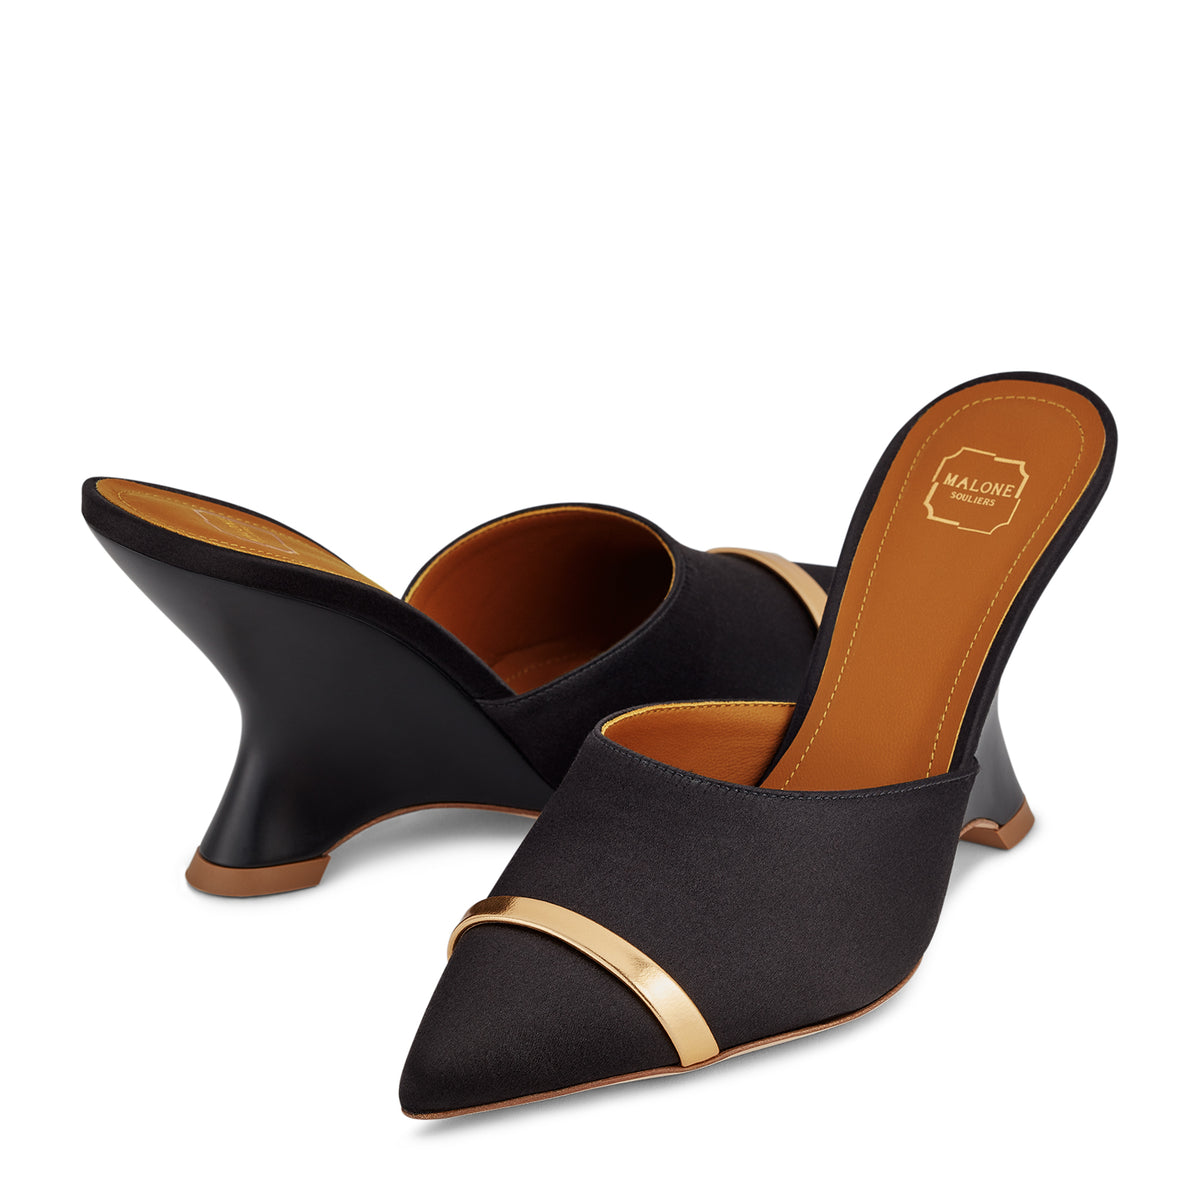 Women's Black Wedge Mules With Pointed Toe Malone Souliers Marilyn